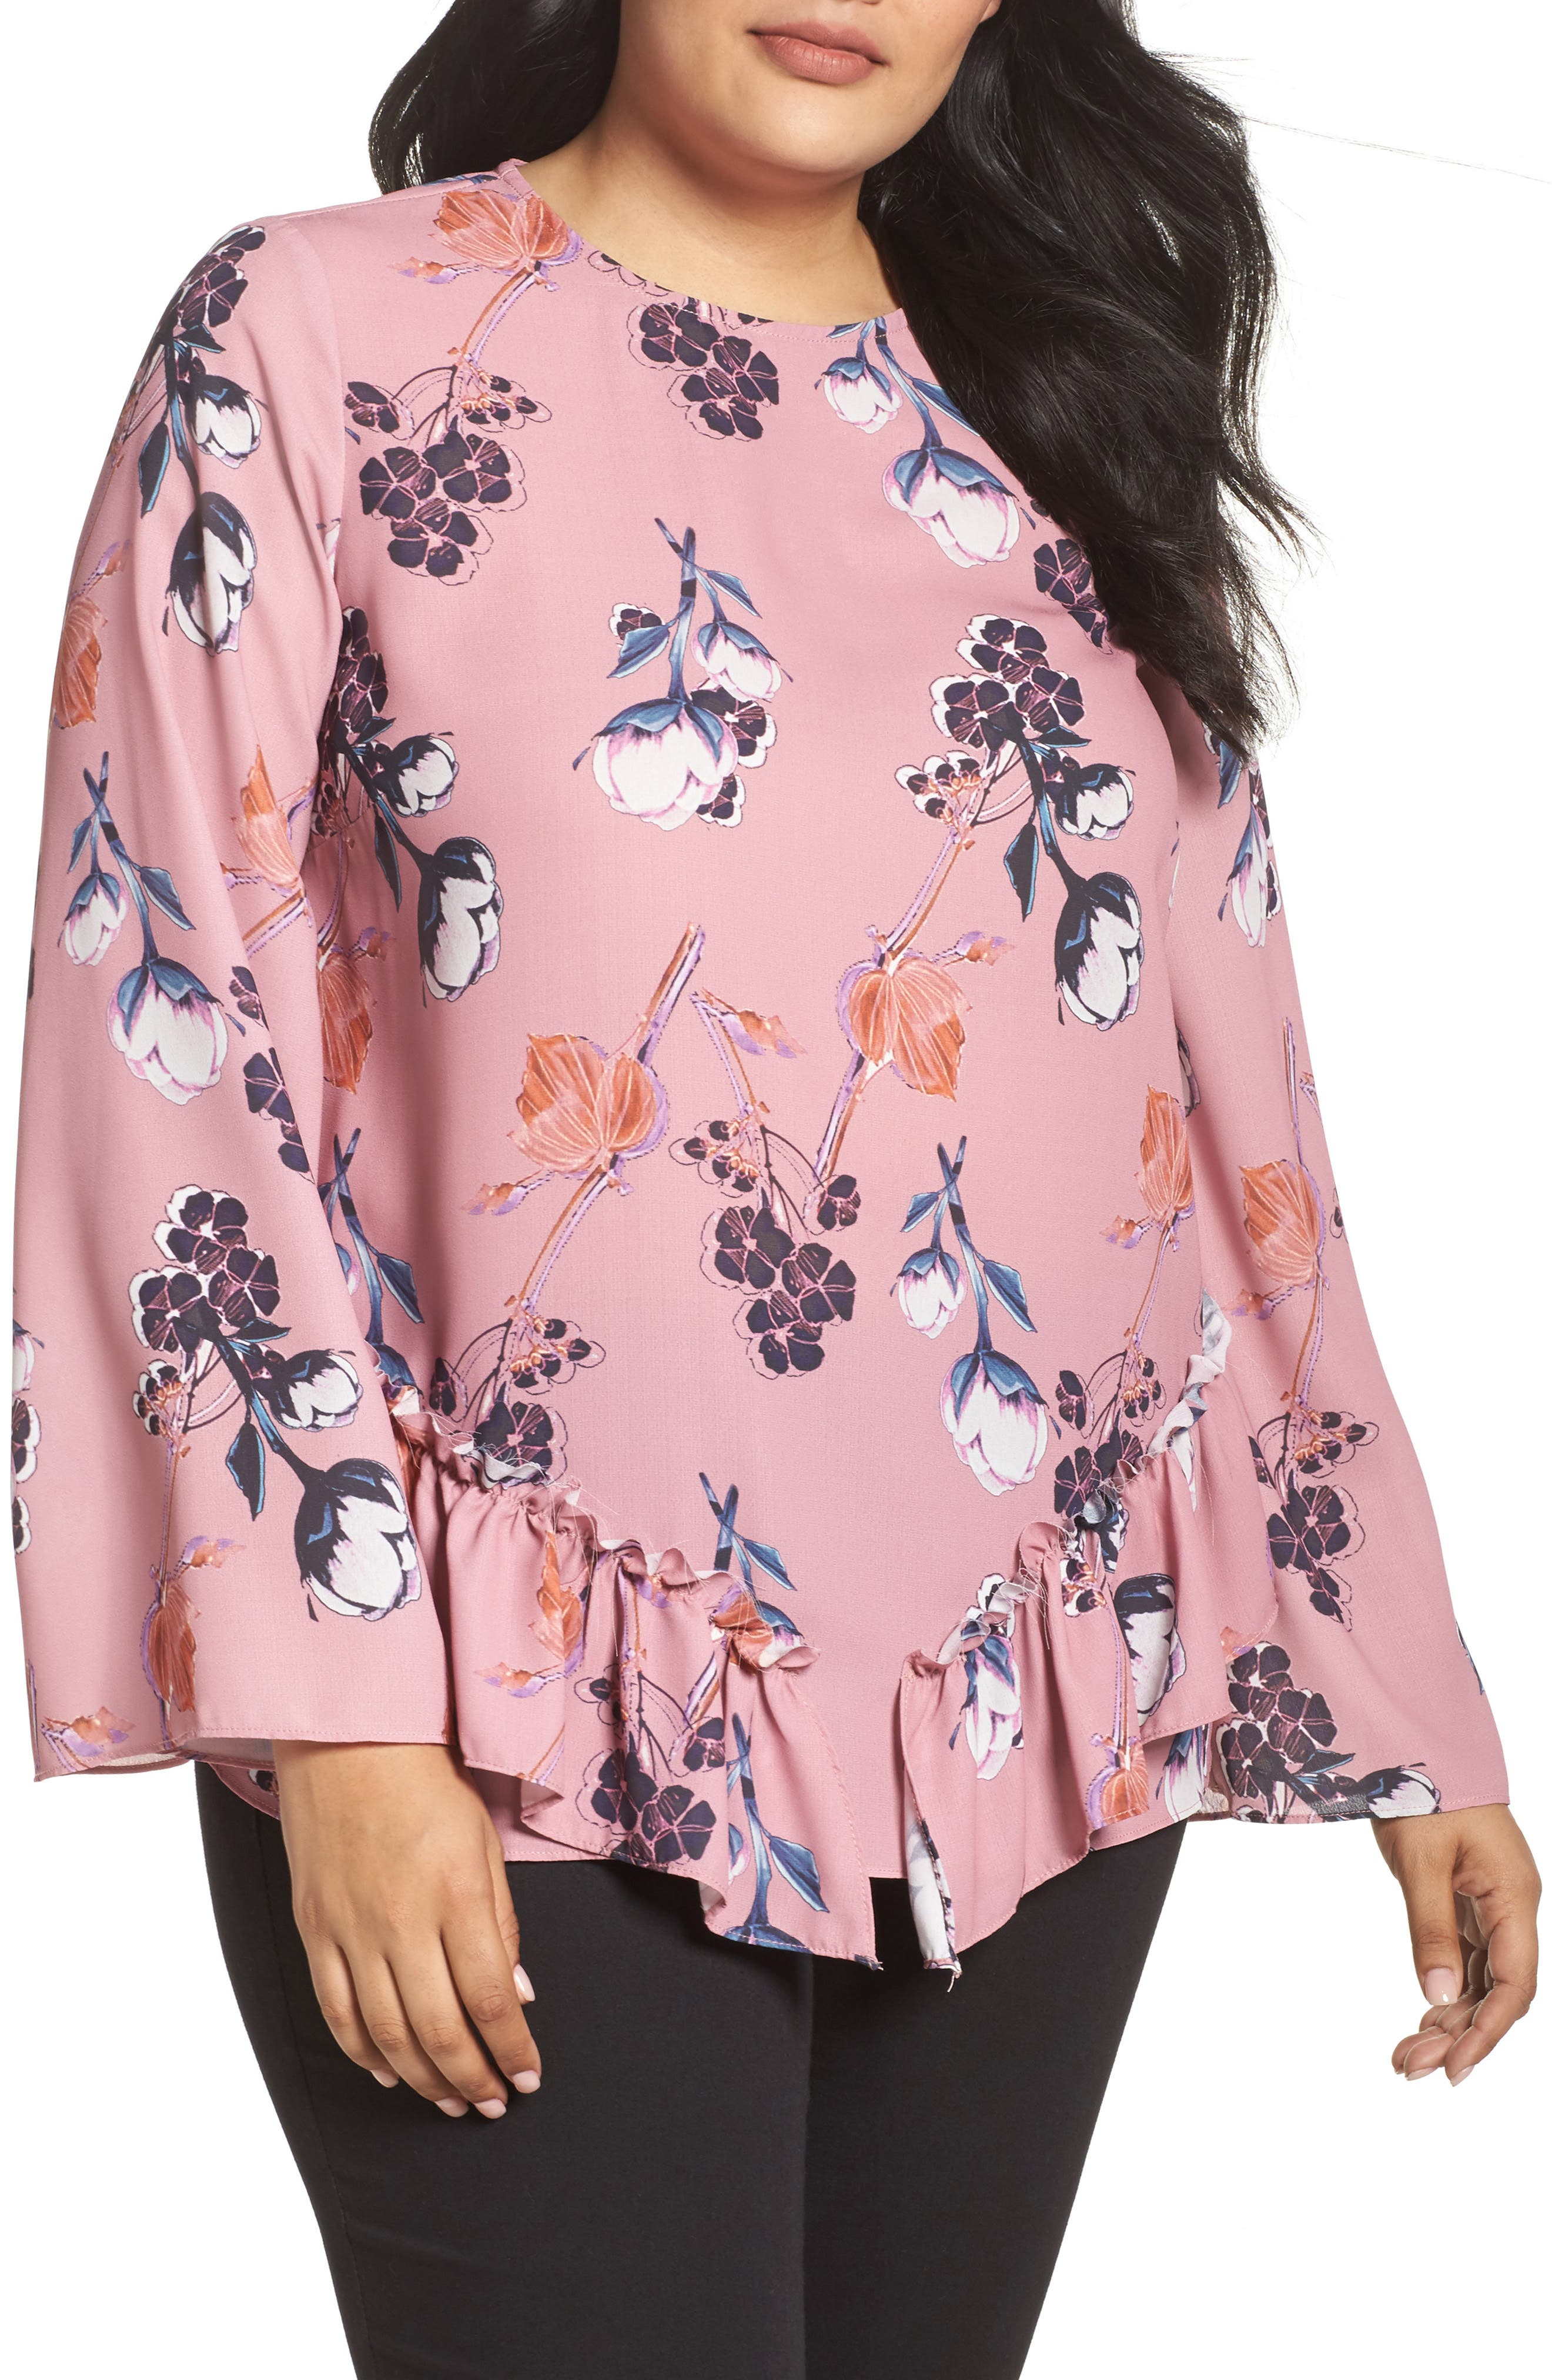 Alternate Image 1 Selected - LOST INK Ruffle Hem Top (Plus Size)